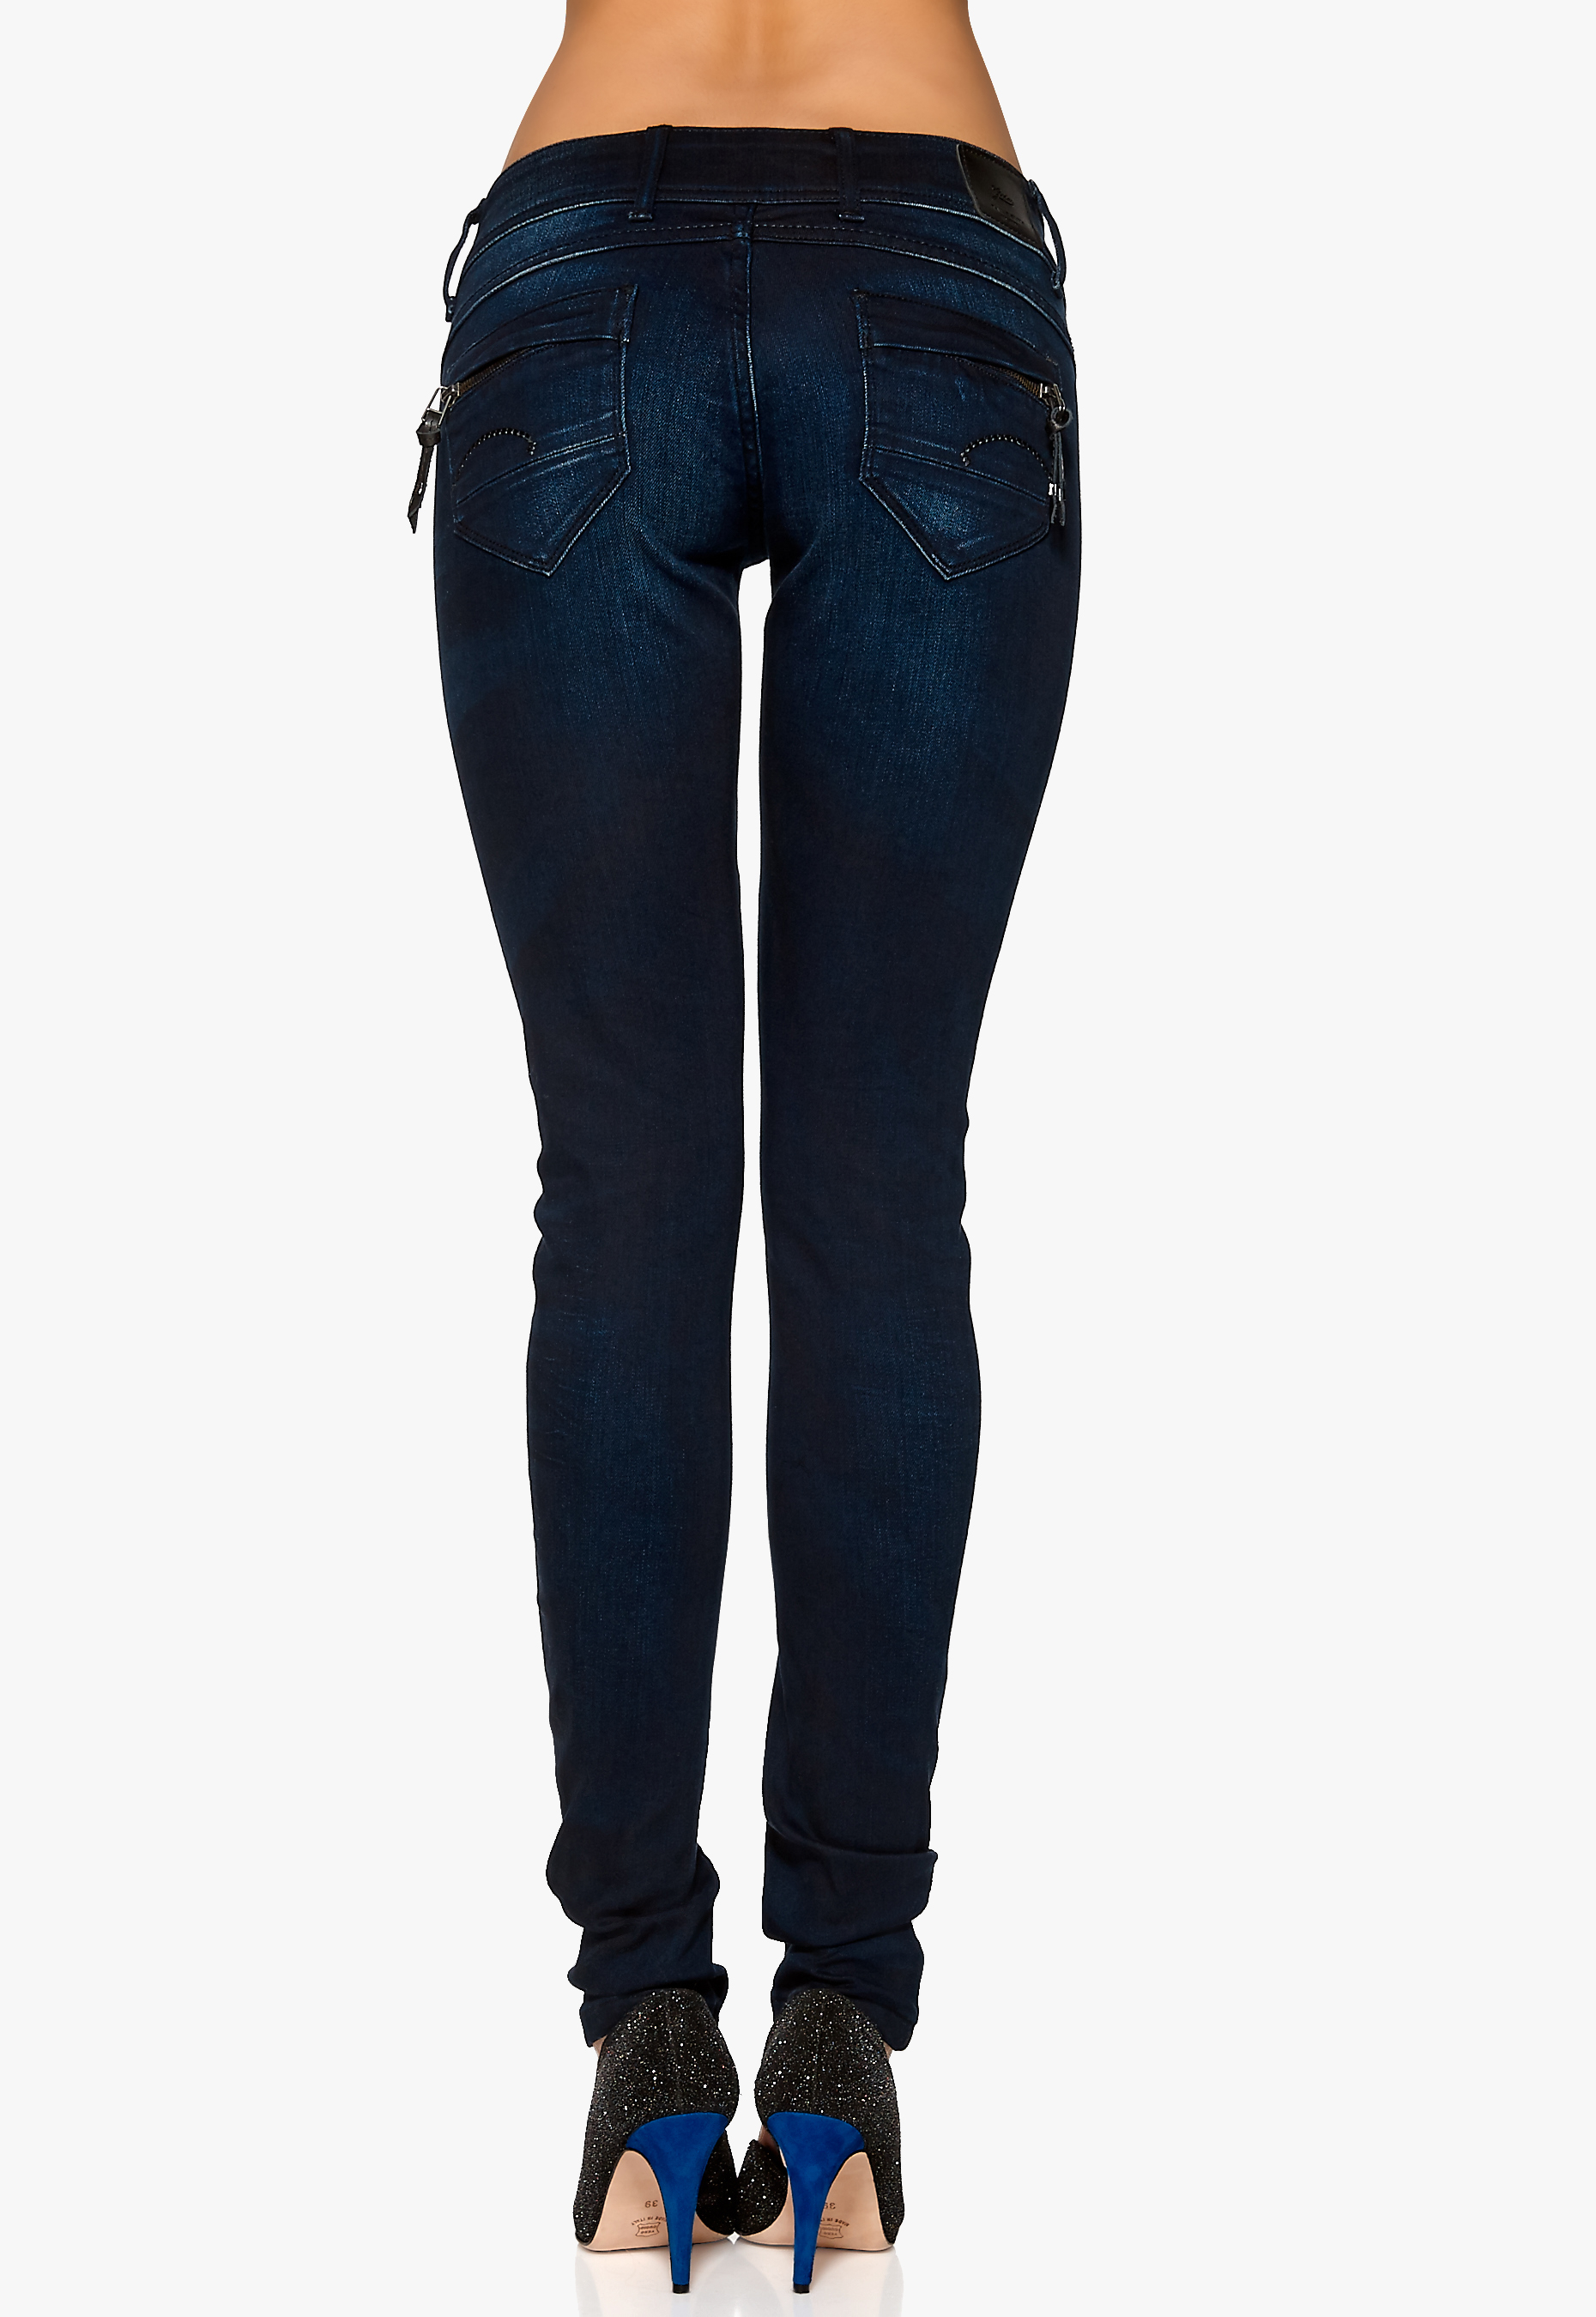 midge cody skinny jeans 149 90 size x checkout. Black Bedroom Furniture Sets. Home Design Ideas